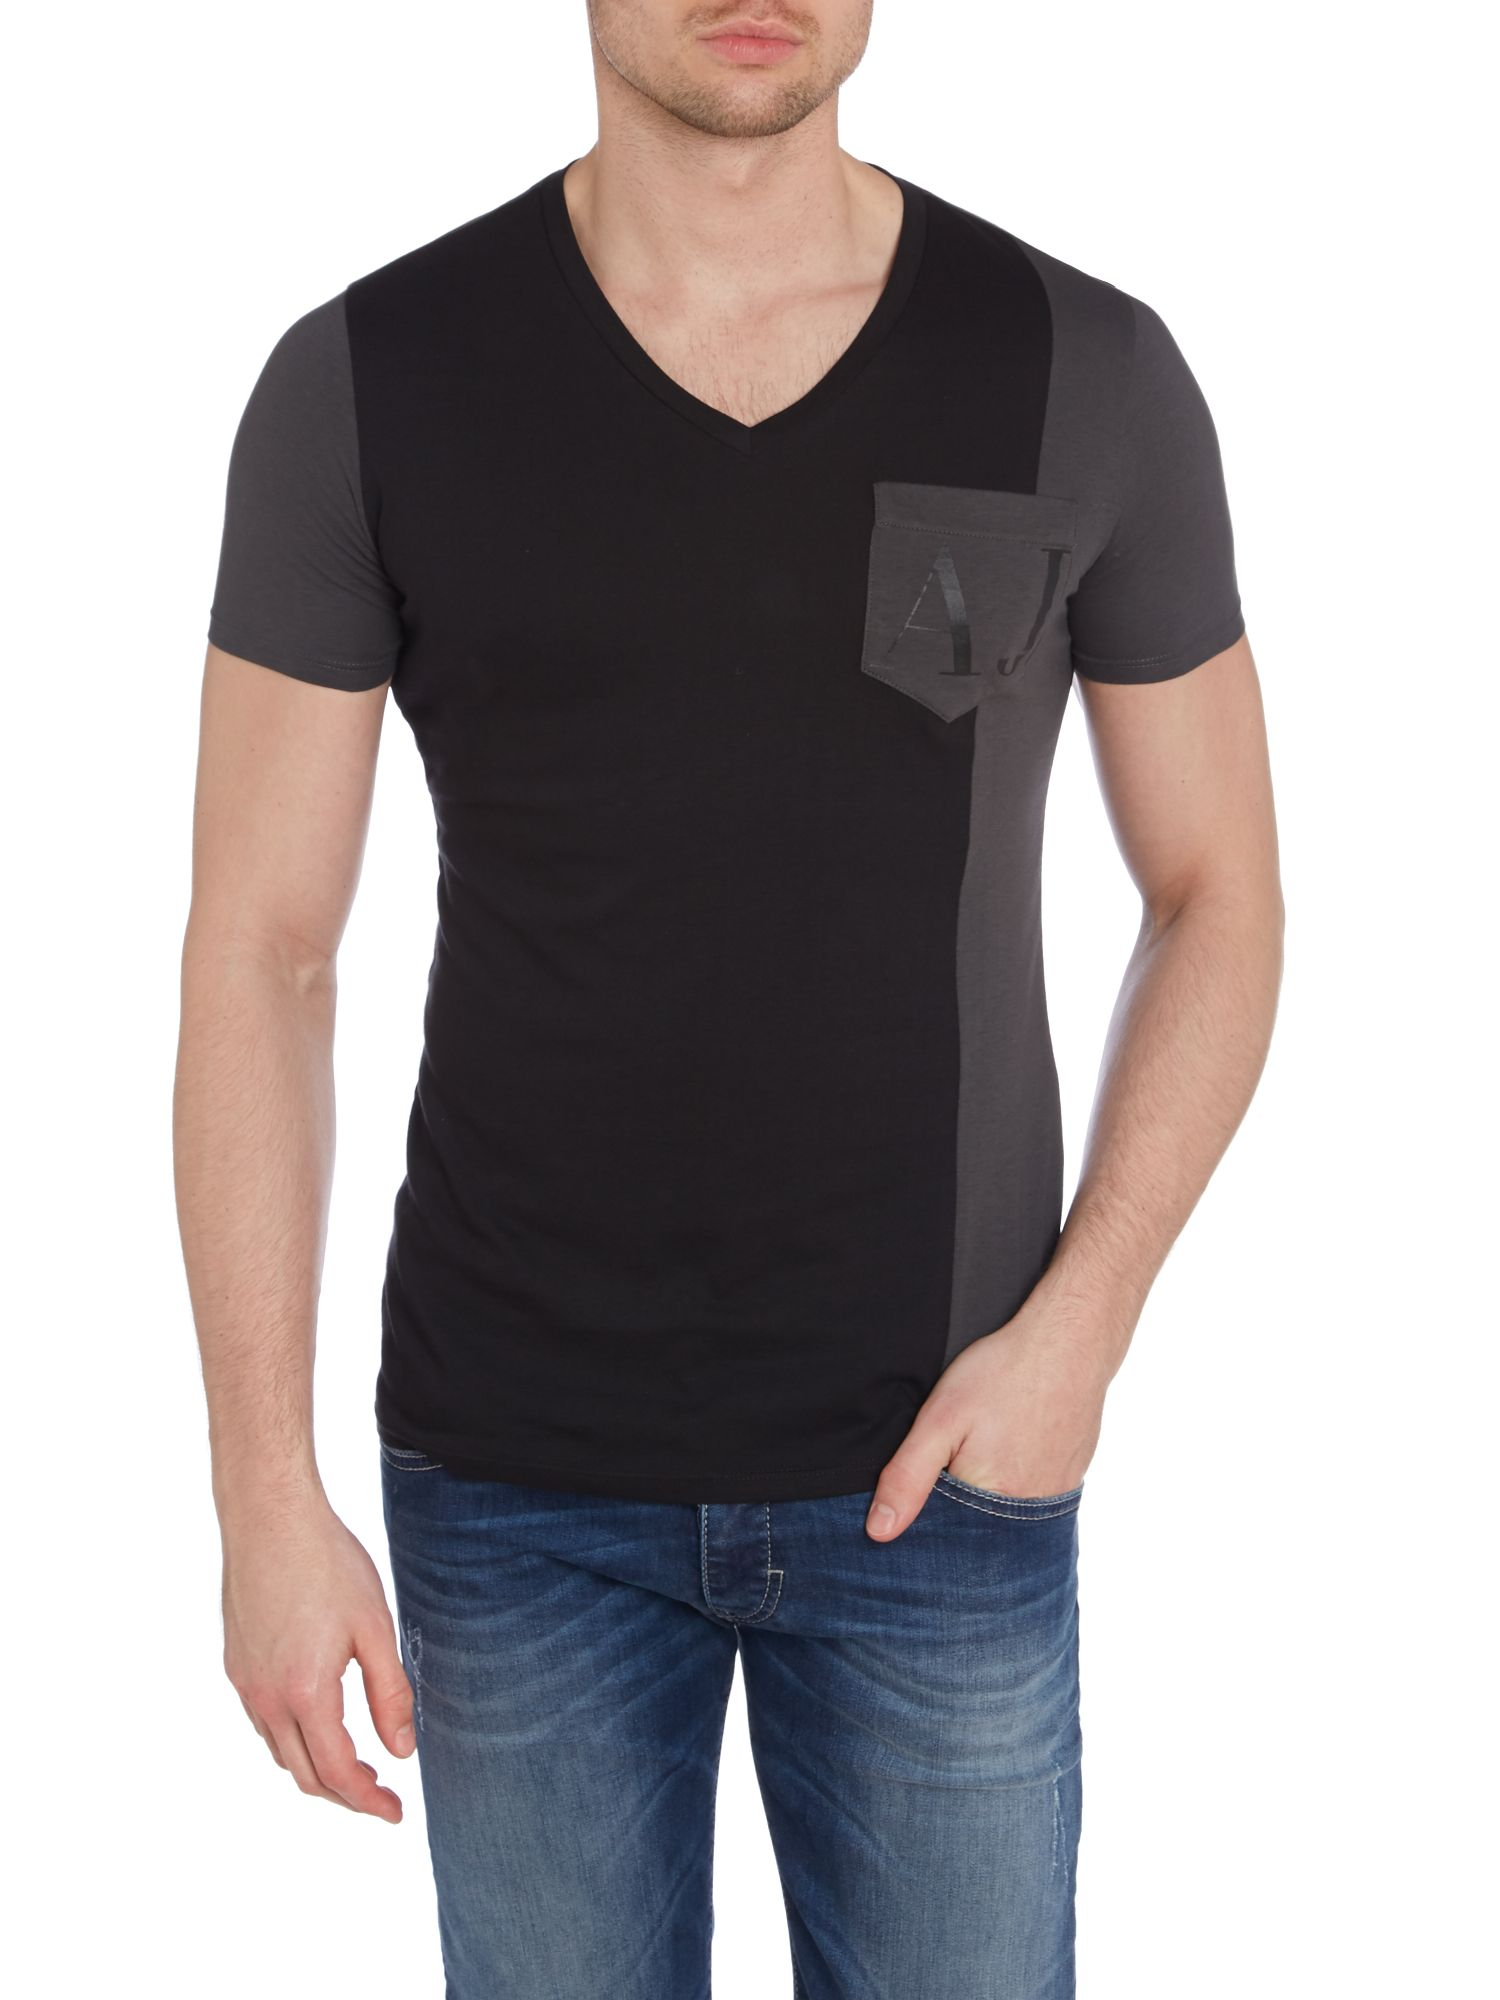 V neck one pocket t-shirt